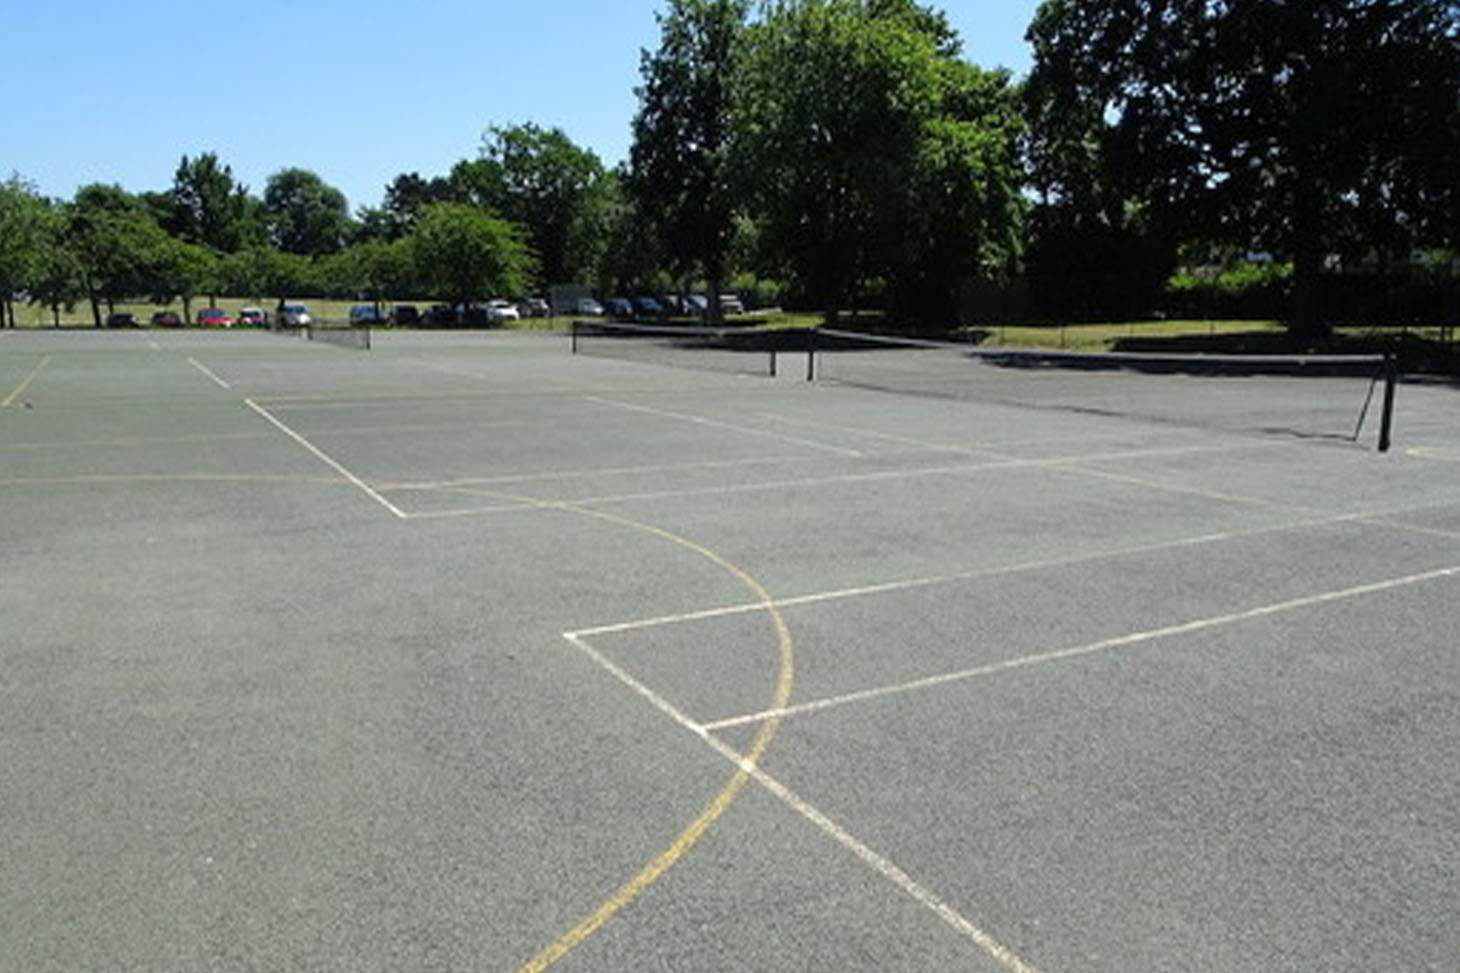 Tudor Grange Academy Solihull Outdoor | Hard (macadam) tennis court